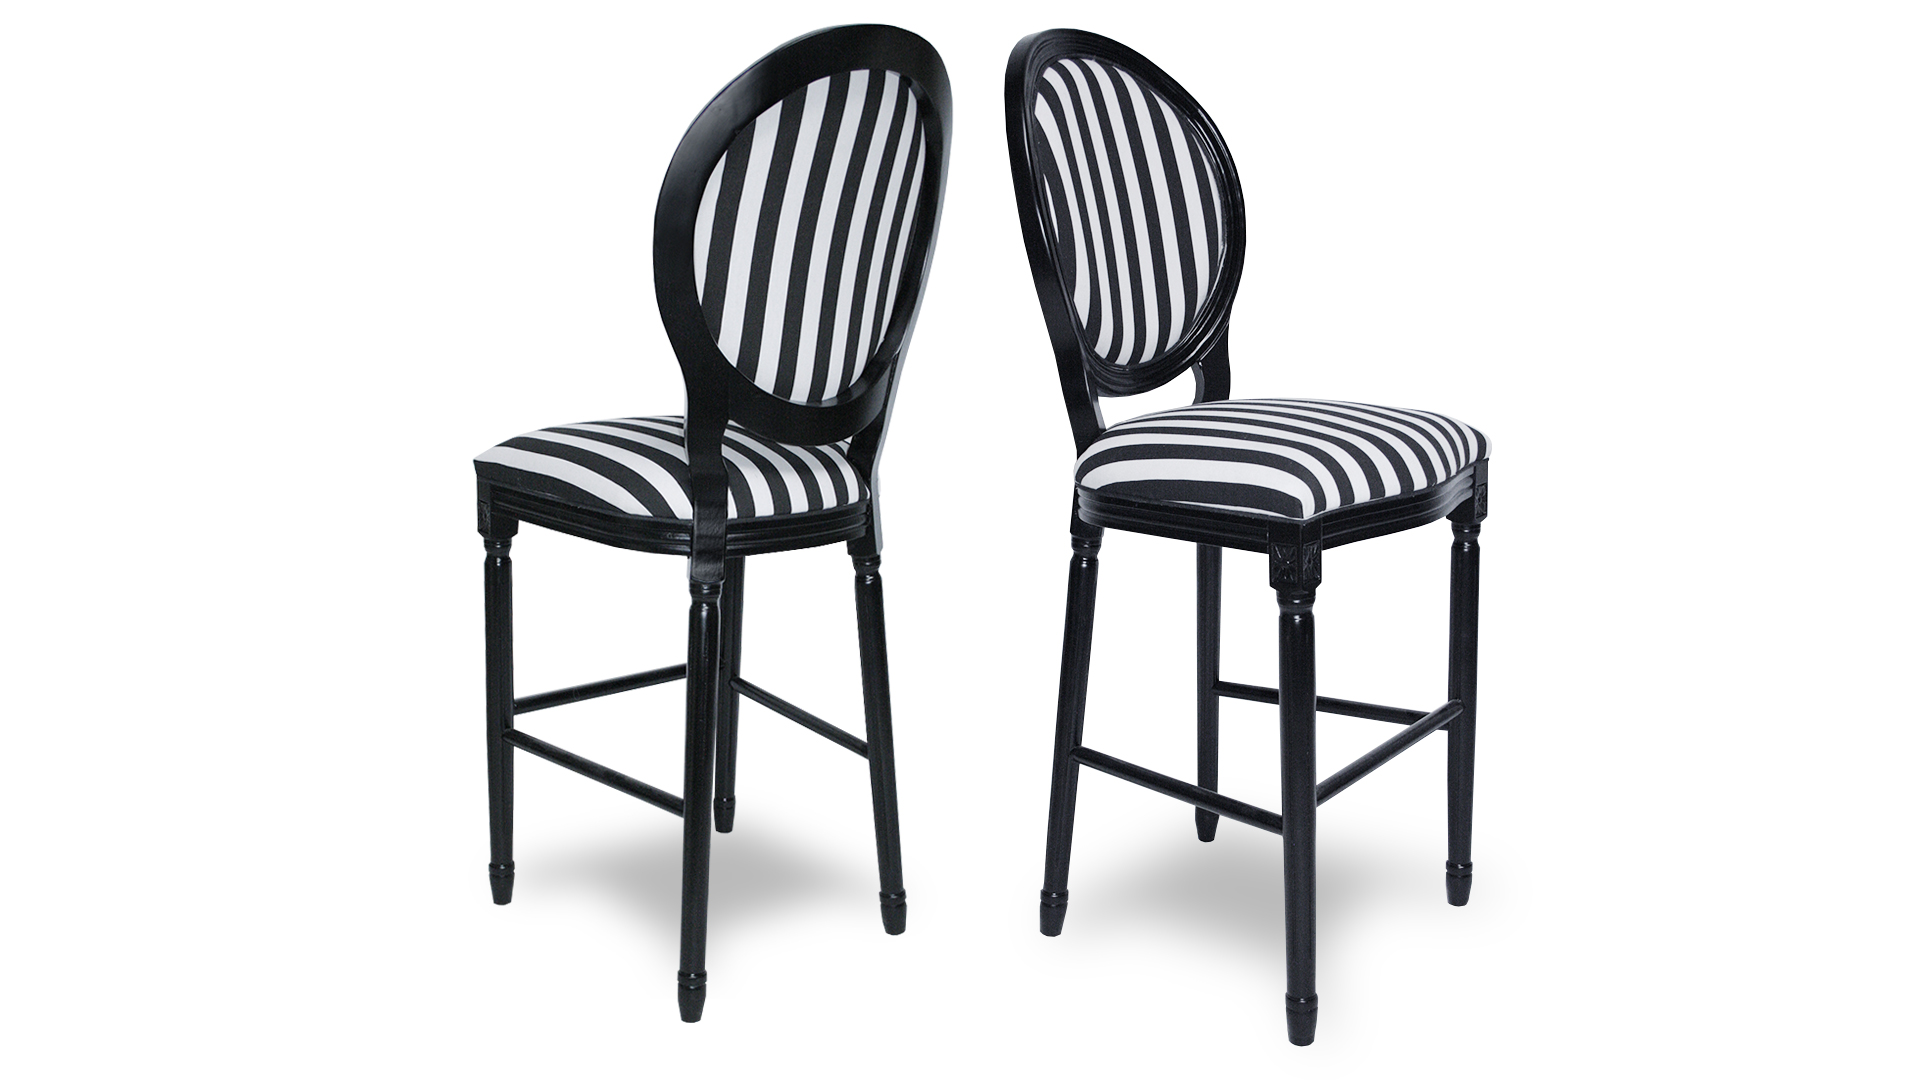 vente tabouret tritoo maison et jardin. Black Bedroom Furniture Sets. Home Design Ideas